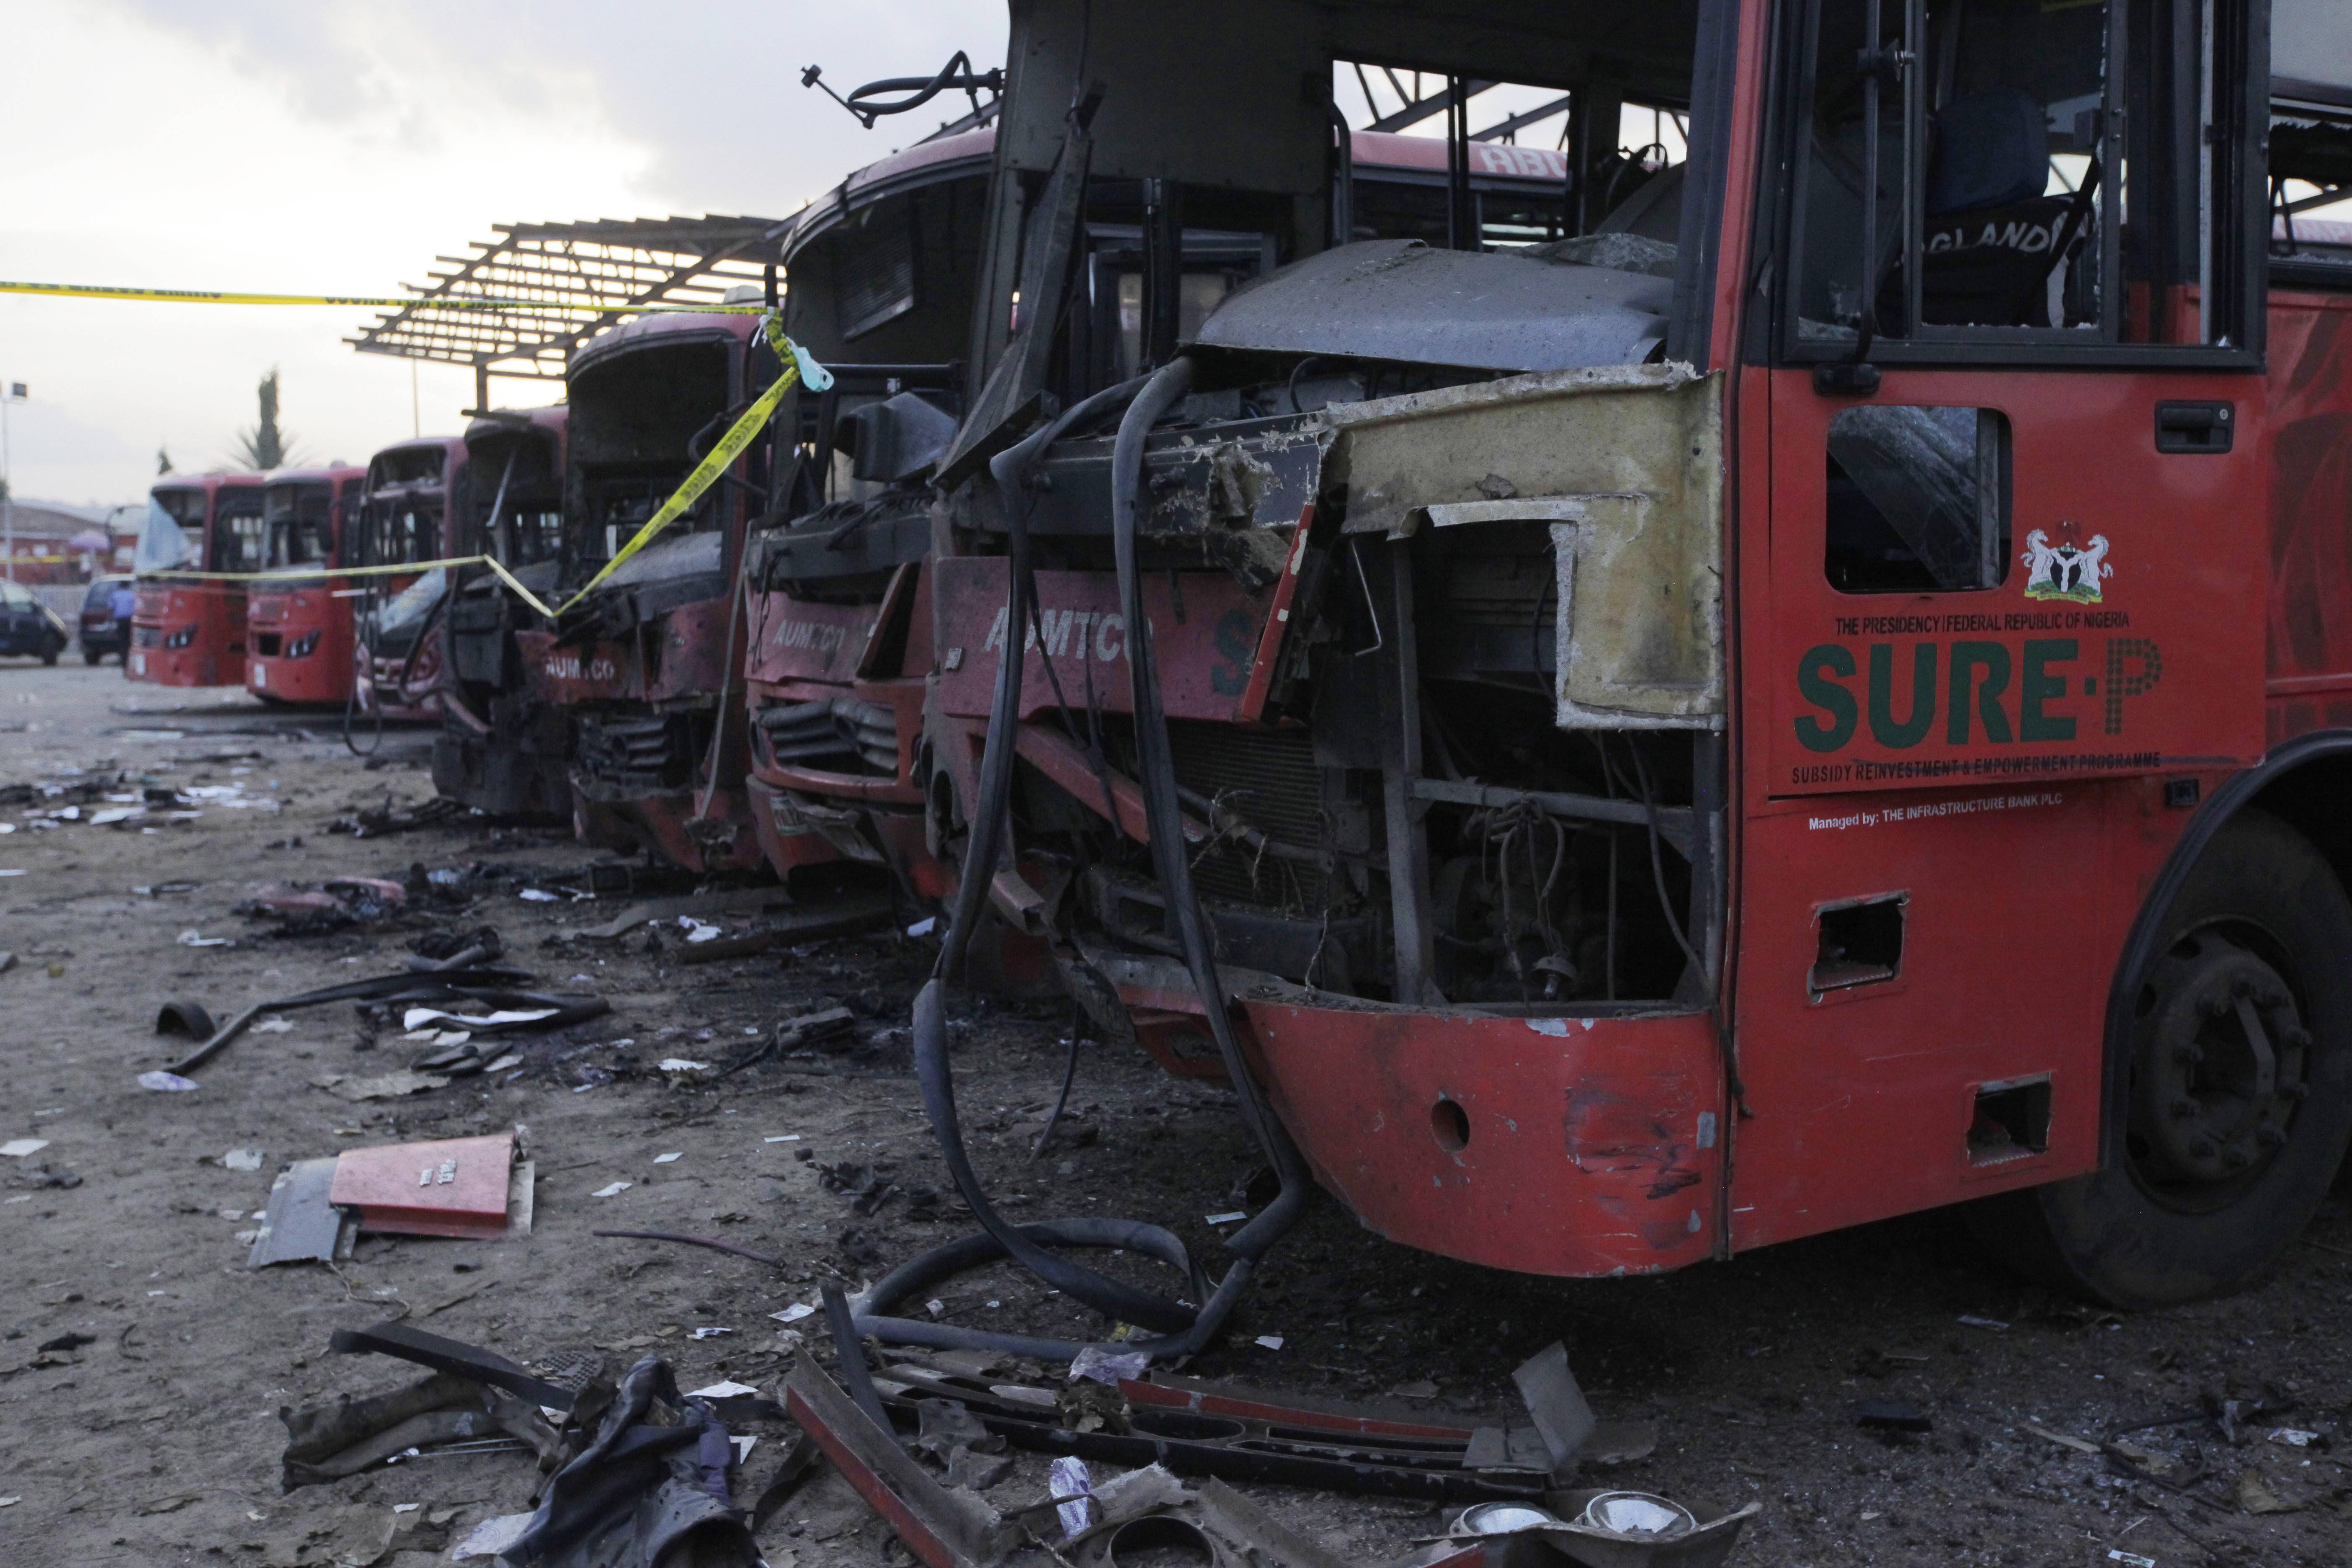 Damaged buses are seen at the scene of an explosion at a bus park in Abuja, Nigeria, Monday, April. 14, 2014. The toll from the massive explosion in Nigeria's capital rose to 75 dead Tuesday and is expected to grow.